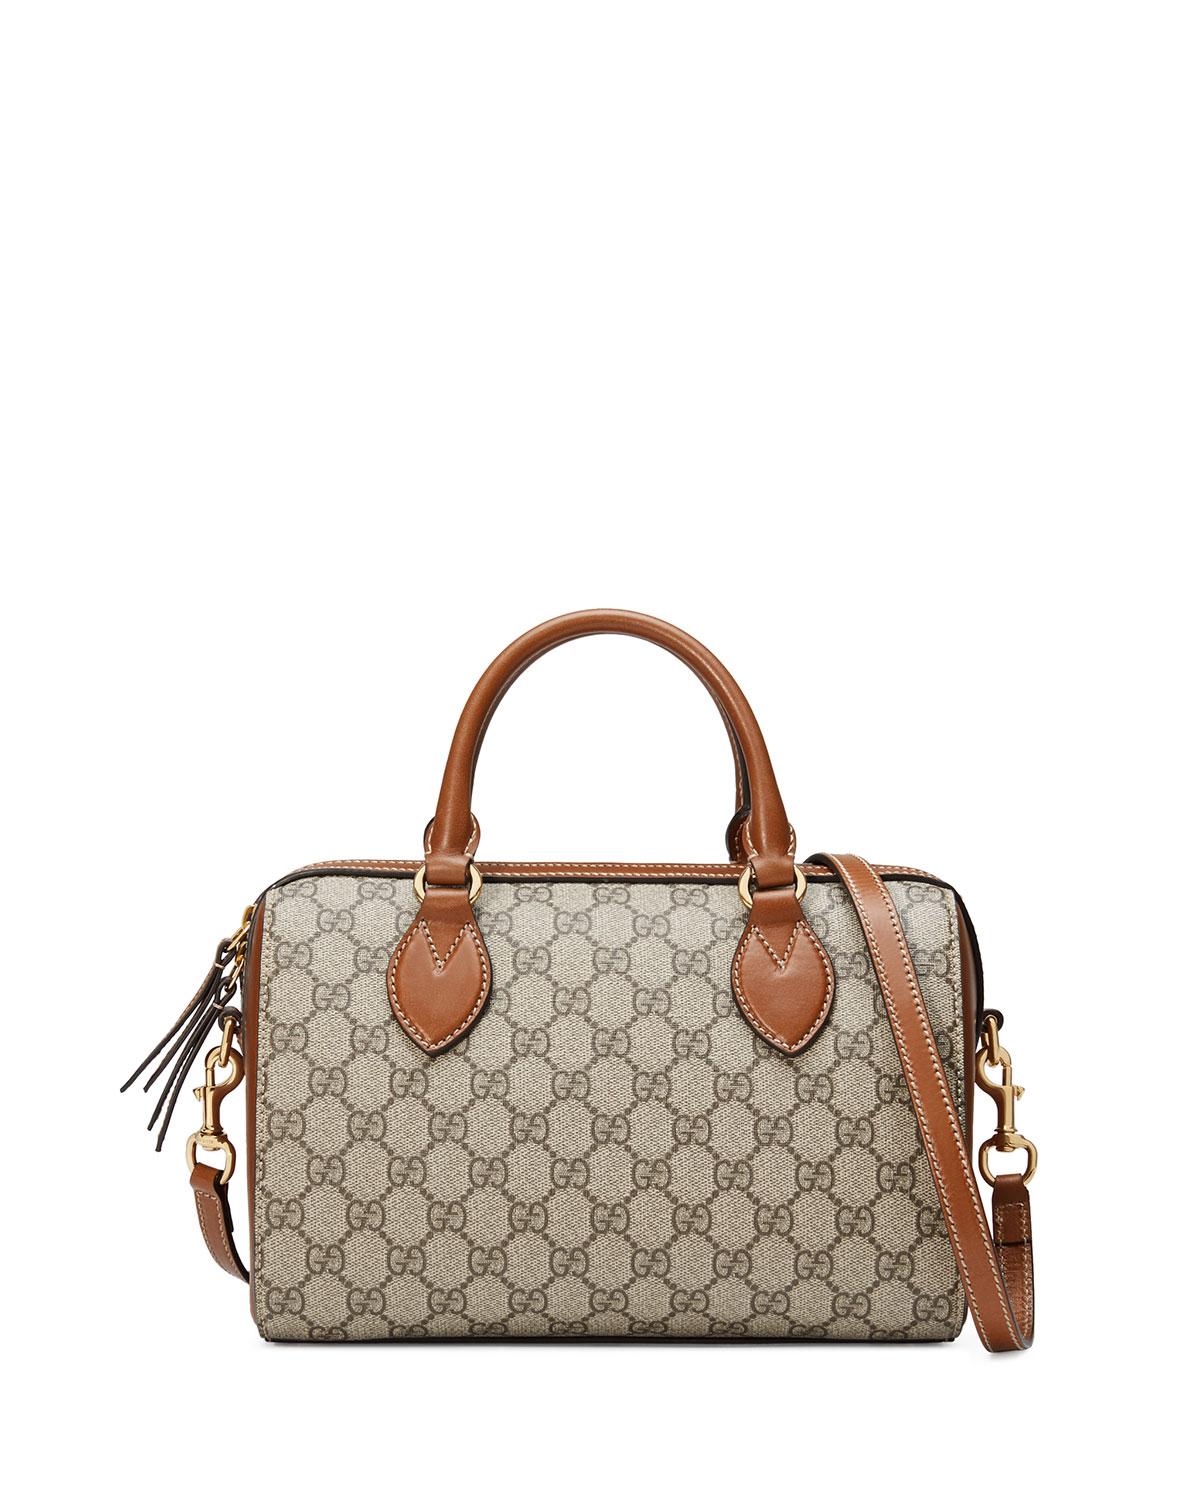 ecdf91a4c3a54b Gucci GG Supreme Small Top-Handle Bag, Beige | Neiman Marcus